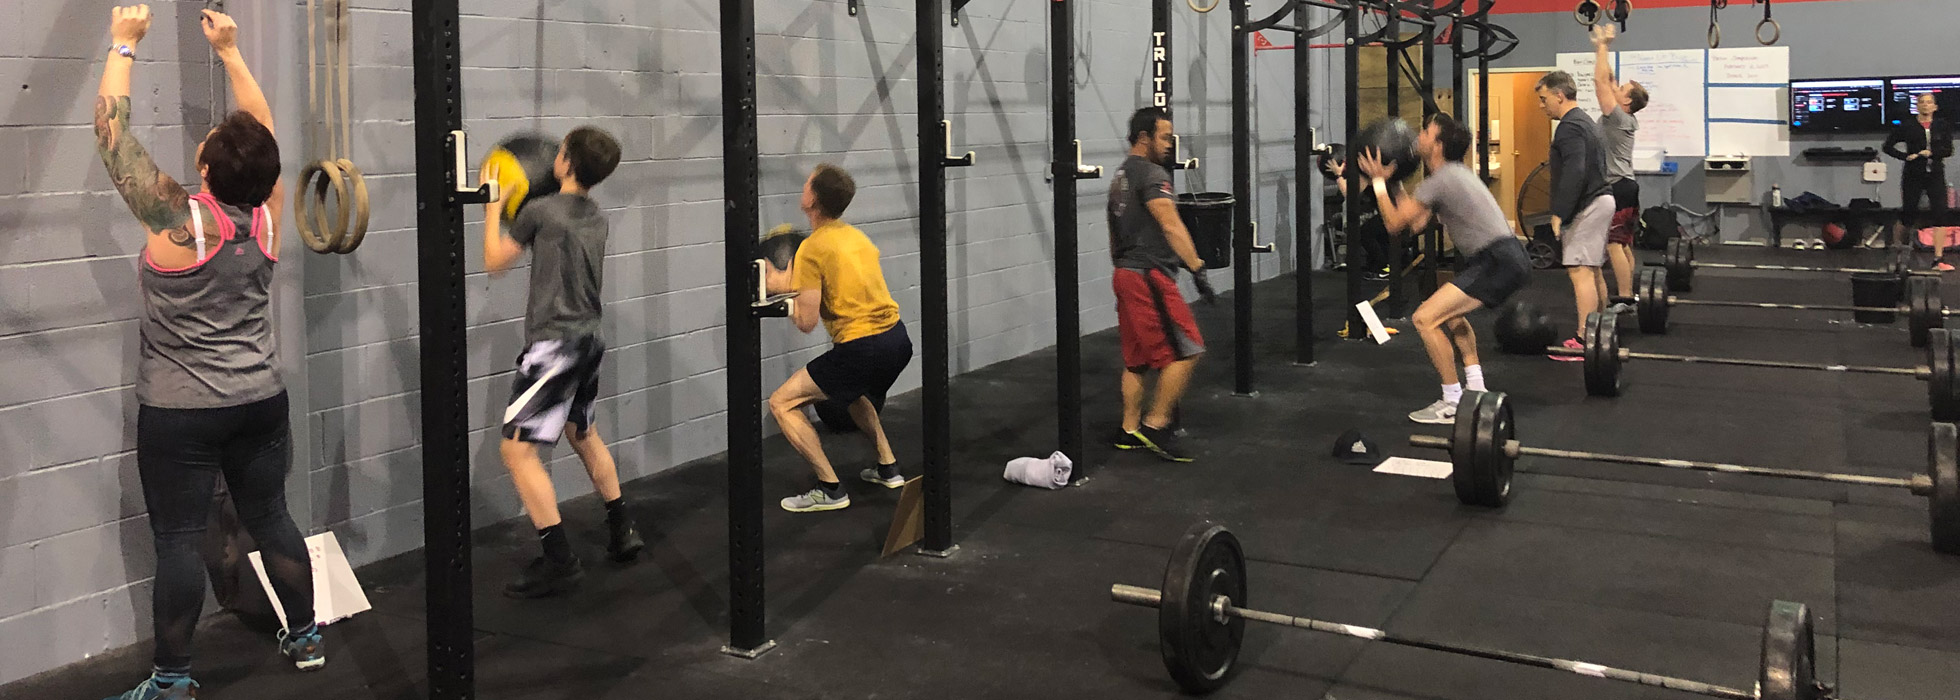 CrossFit Classes in Woodstock GA, CrossFit Classes near Atlanta GA, CrossFit Classes near Kennesaw GA, CrossFit Classes near Marietta GA